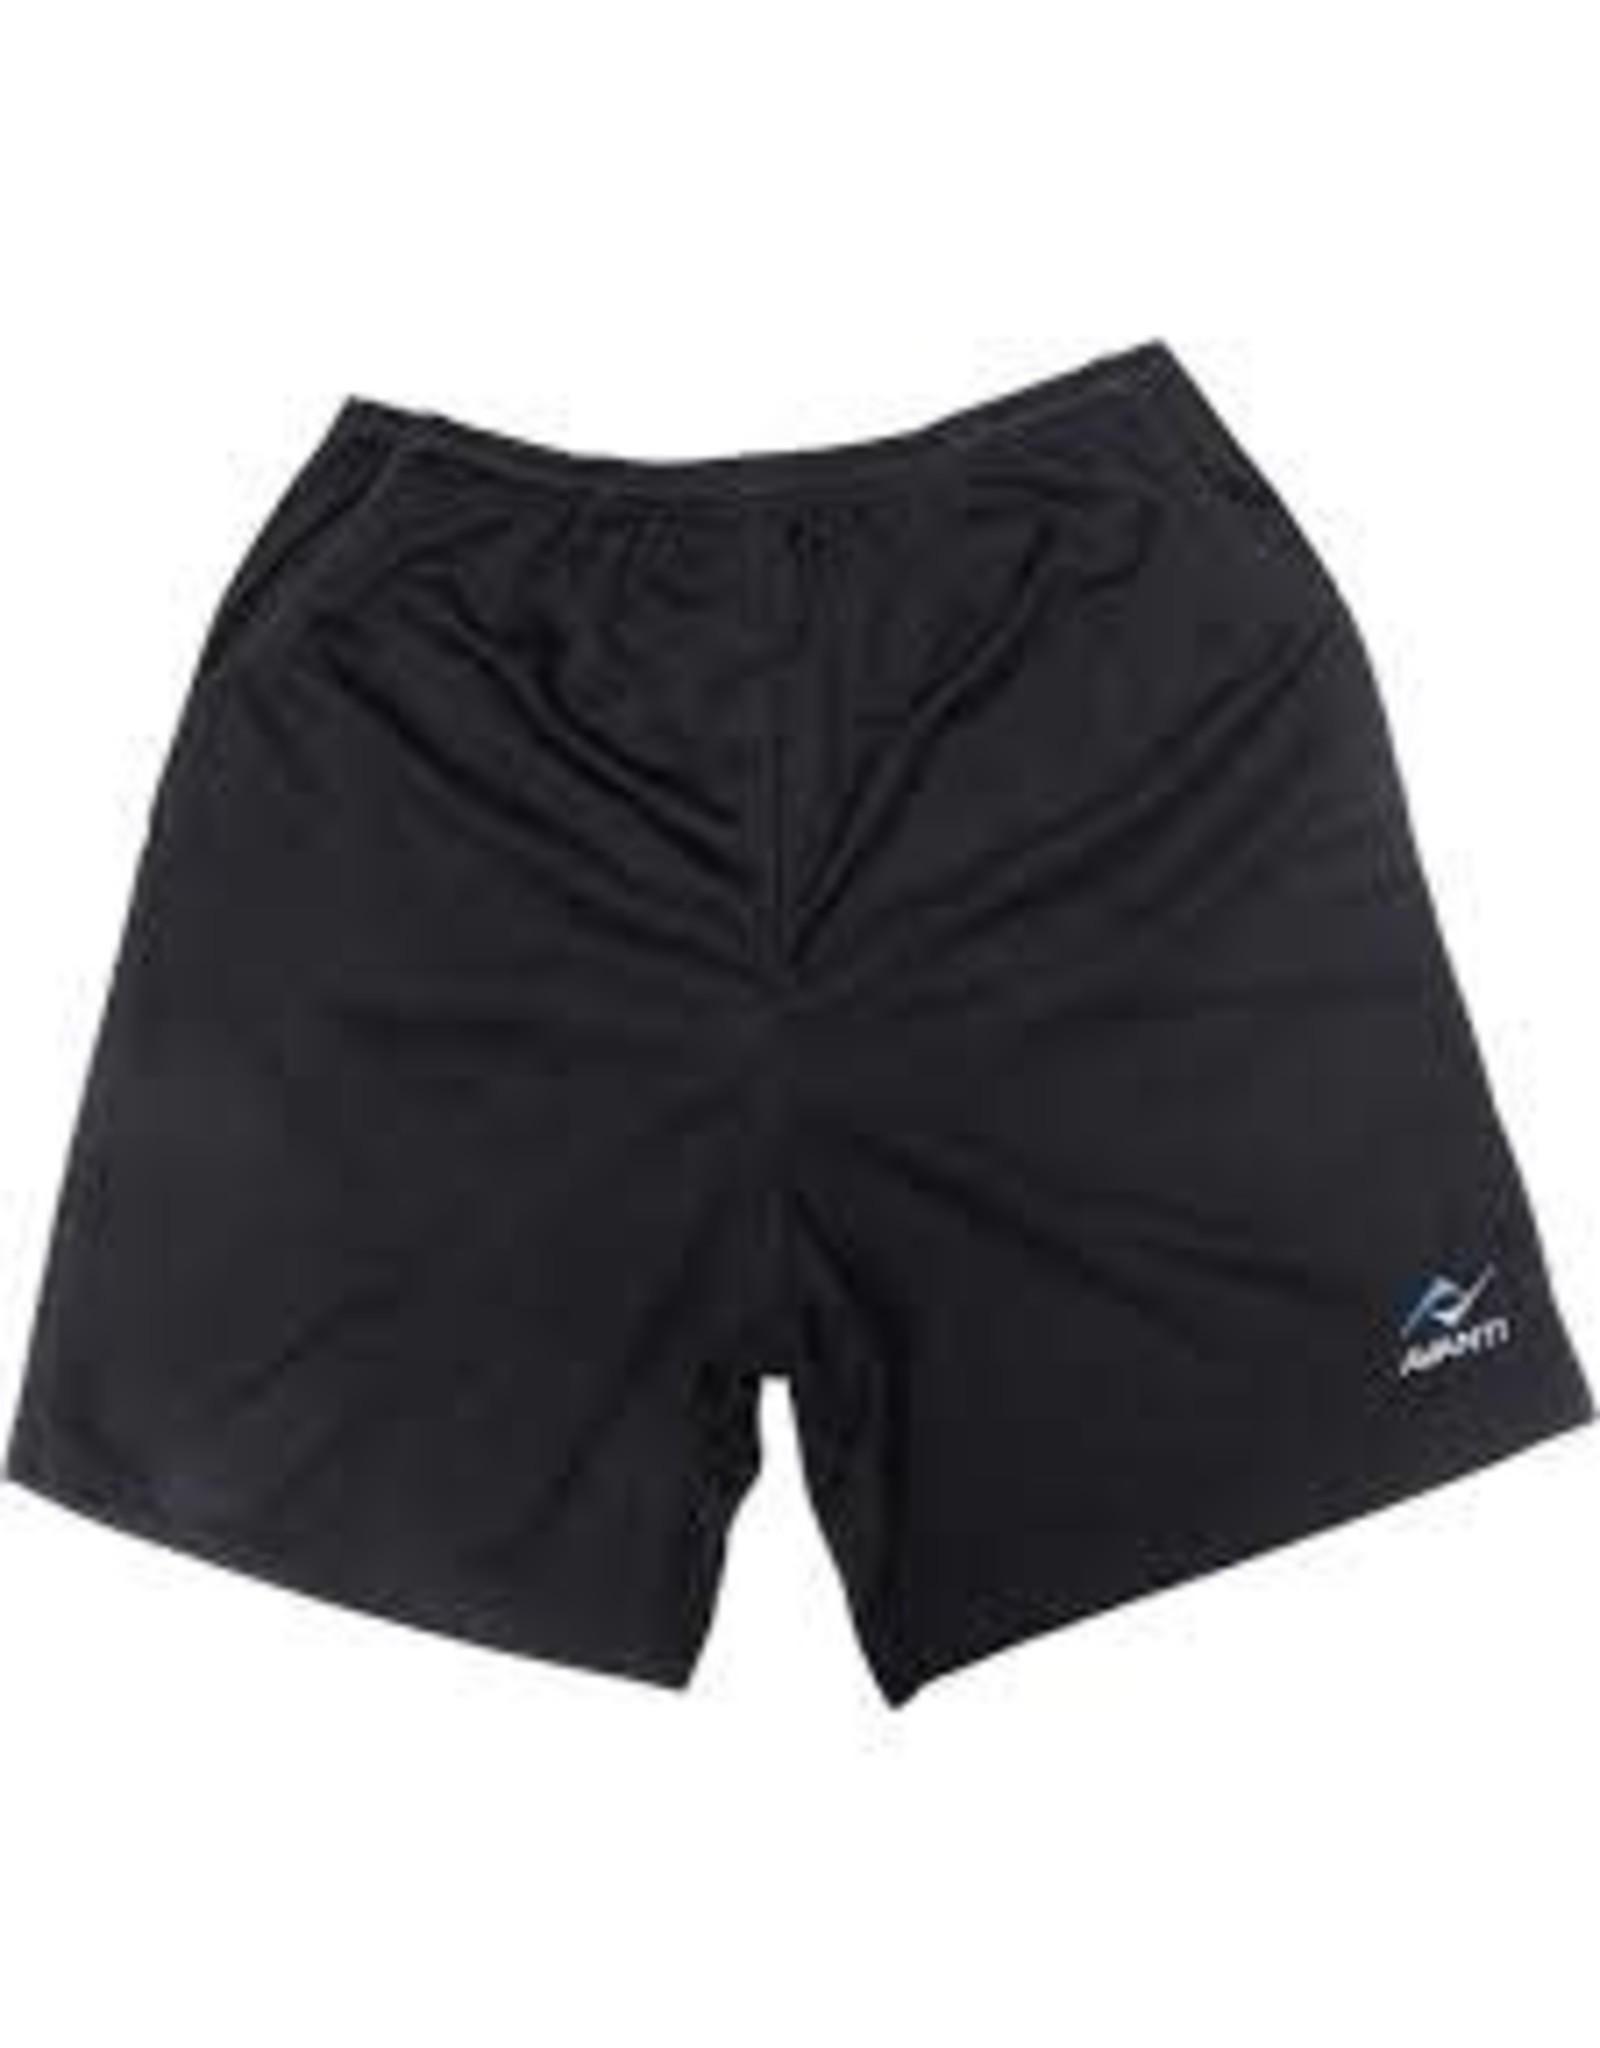 Avanti Avanti Millennium Referee Short (Black)